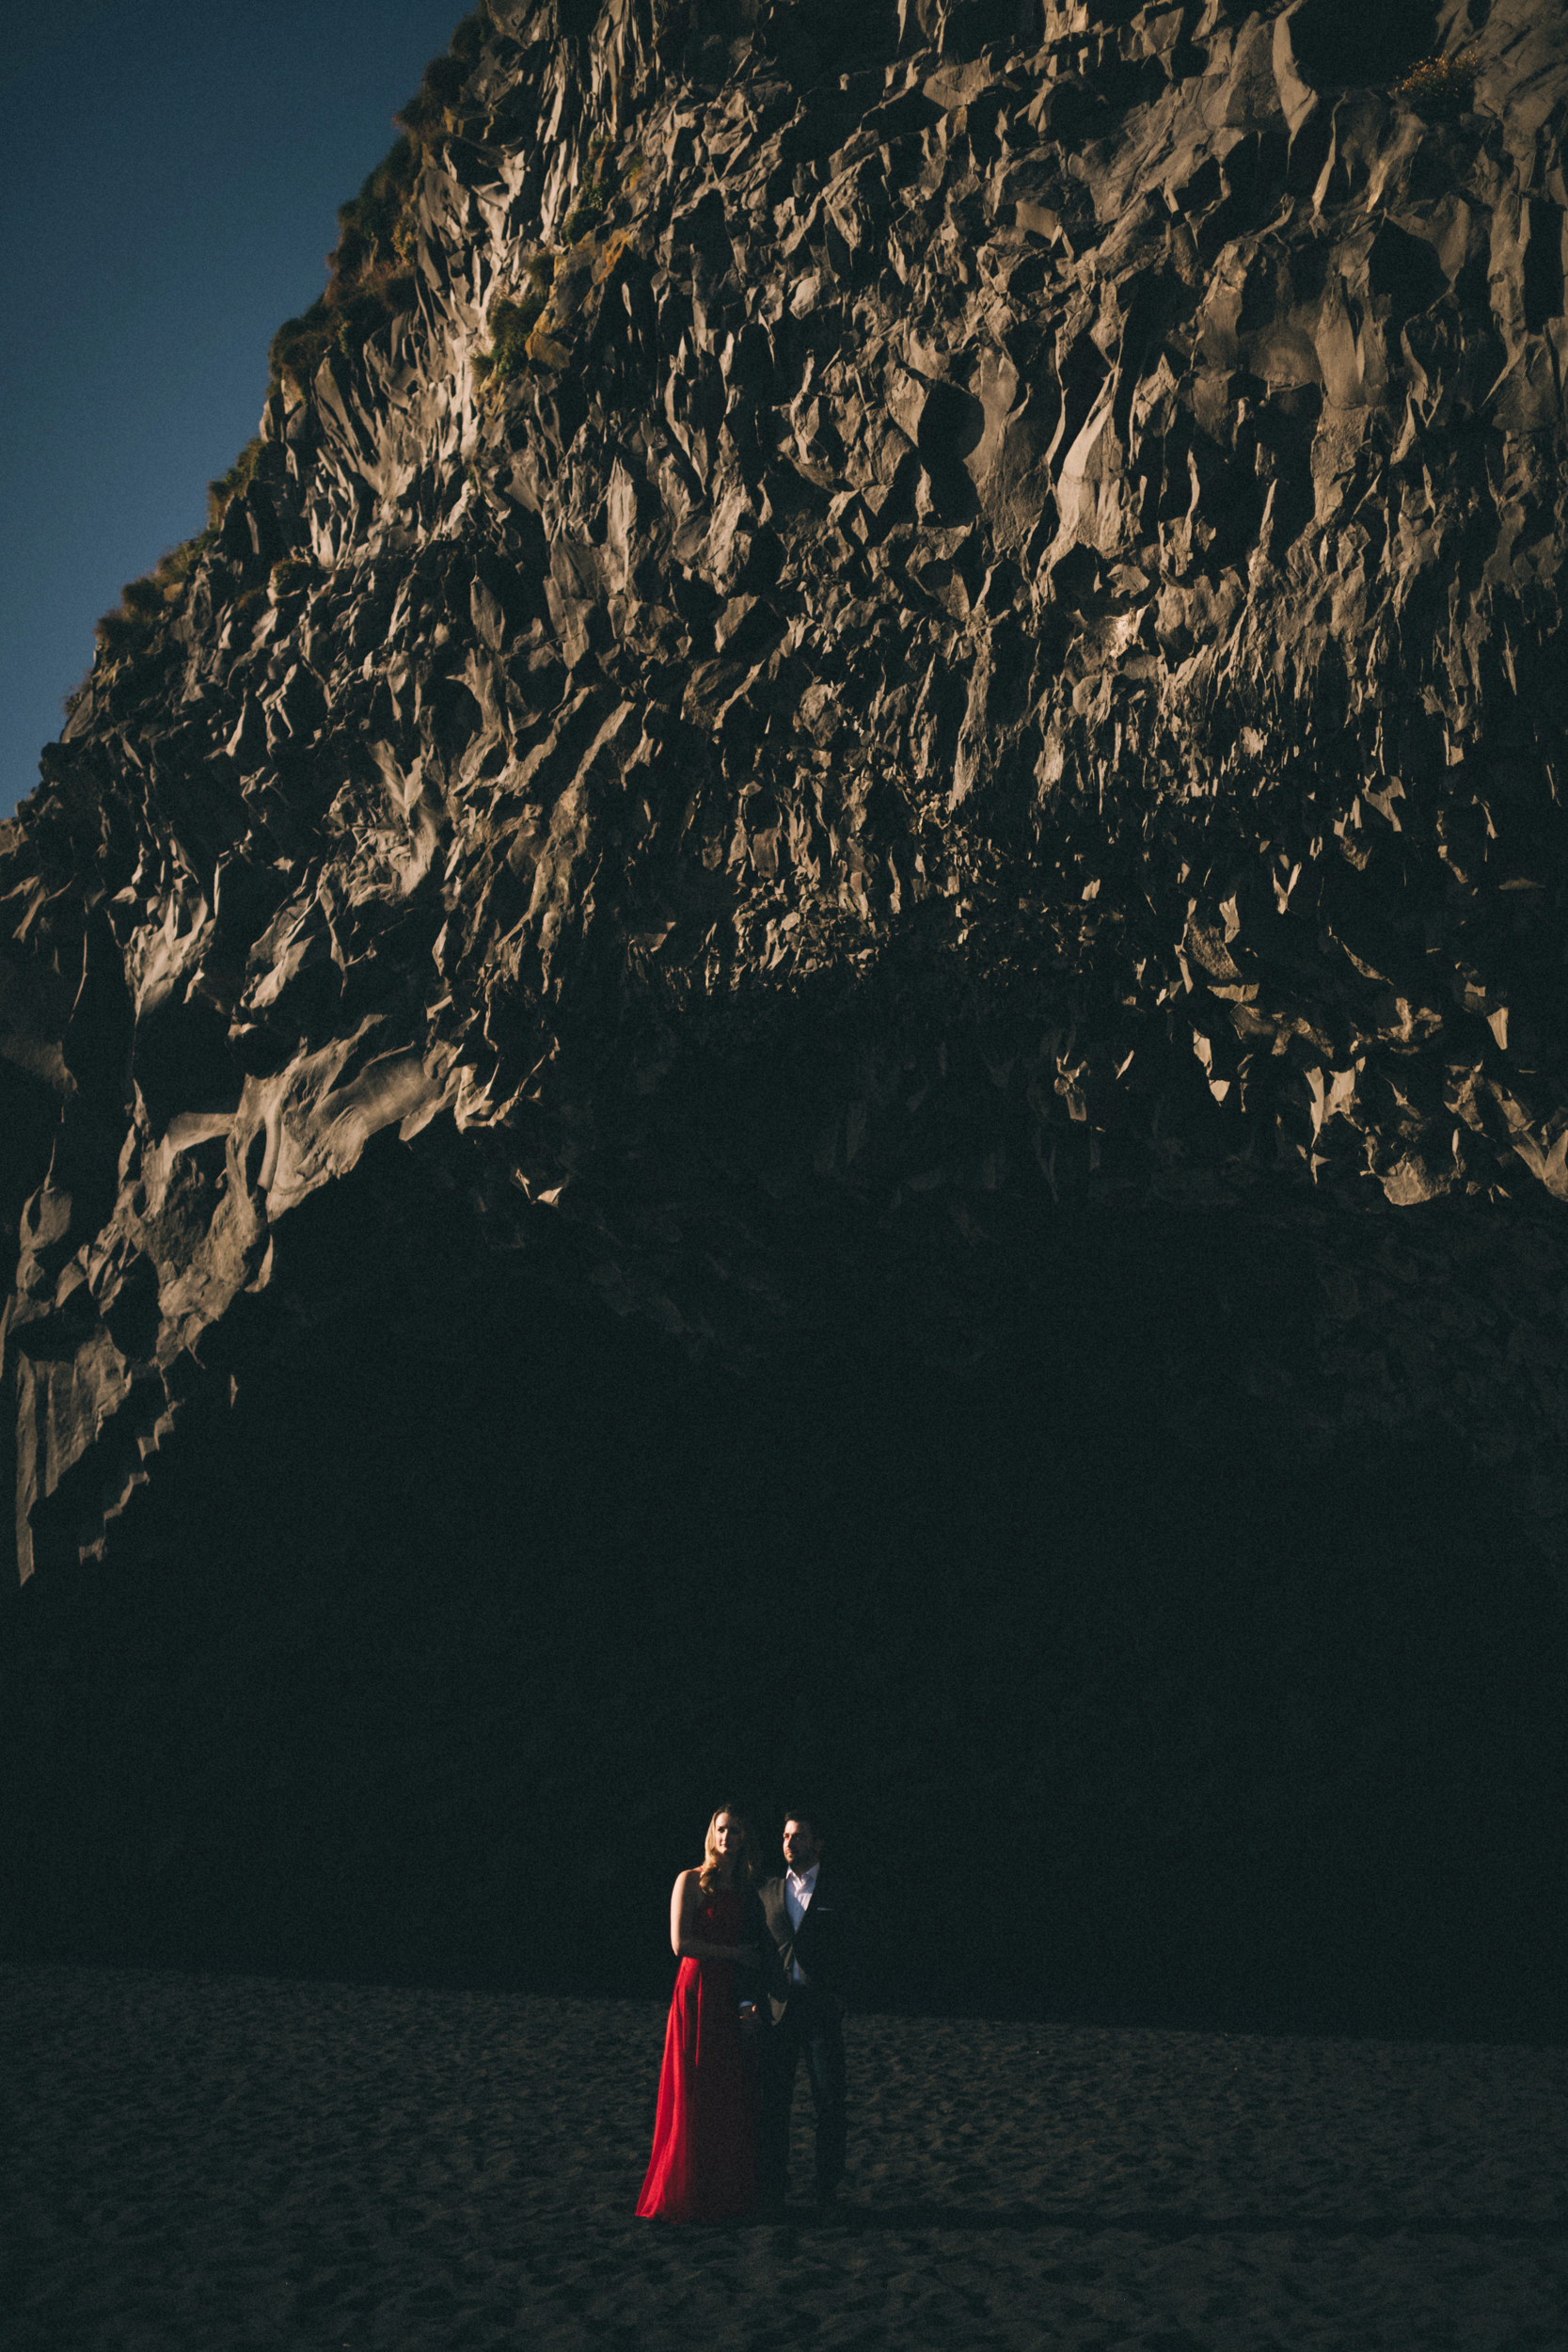 Sarah-Katherine-Davis-Photography-Iceland-Adventure-Elopement-Photographer-Louisville-Kentucky-Wedding-Photographer-Travel-Vik-Beach-Engagement-Session-Red-Dress-Reynisfjara-2edit.jpg